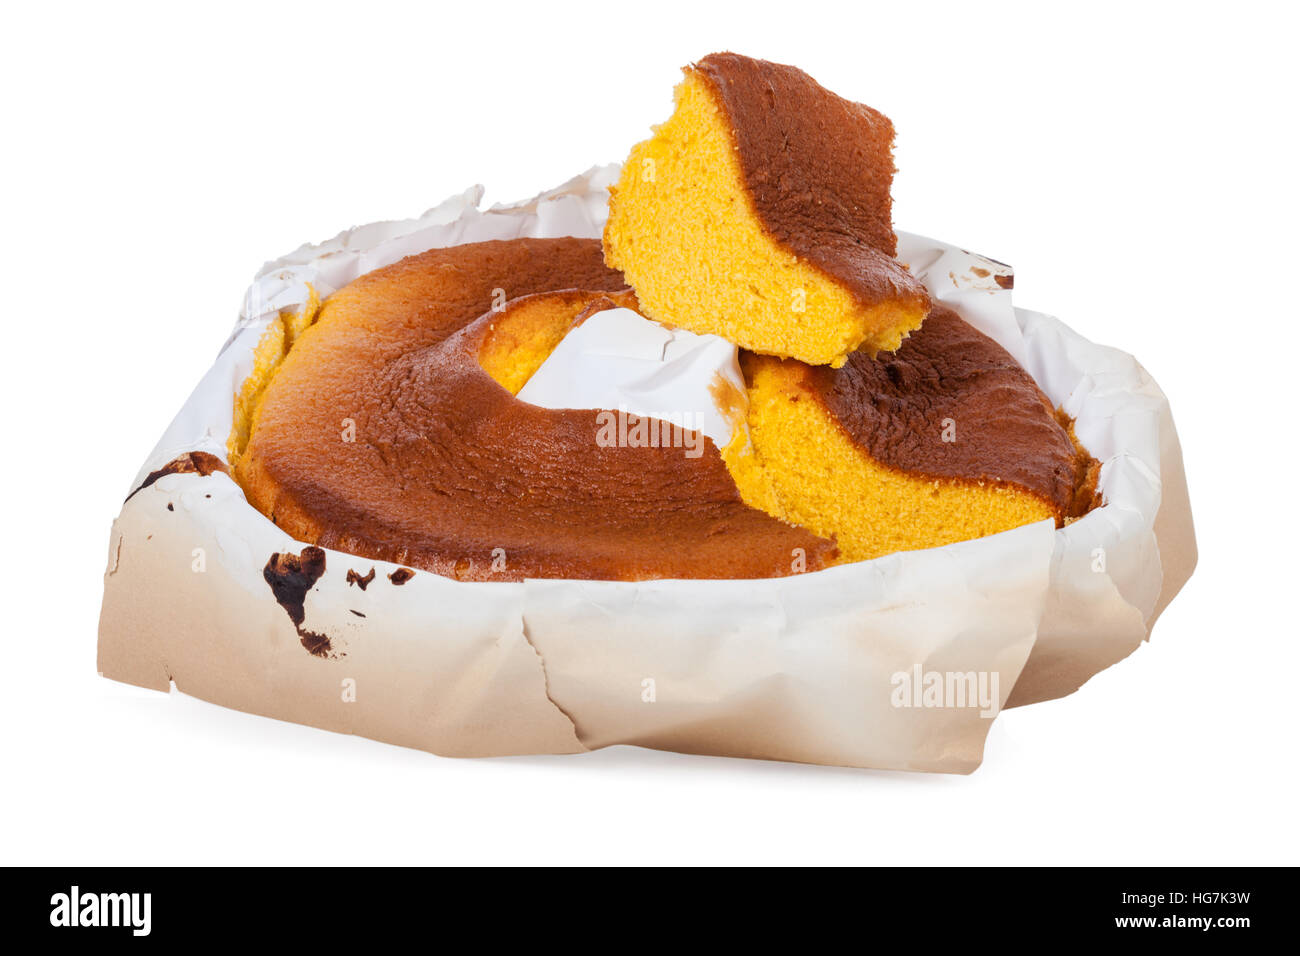 Pao de Lo, the Portuguese sponge cake shown in its most traditional form, with the typical paper sheets used on - Stock Image